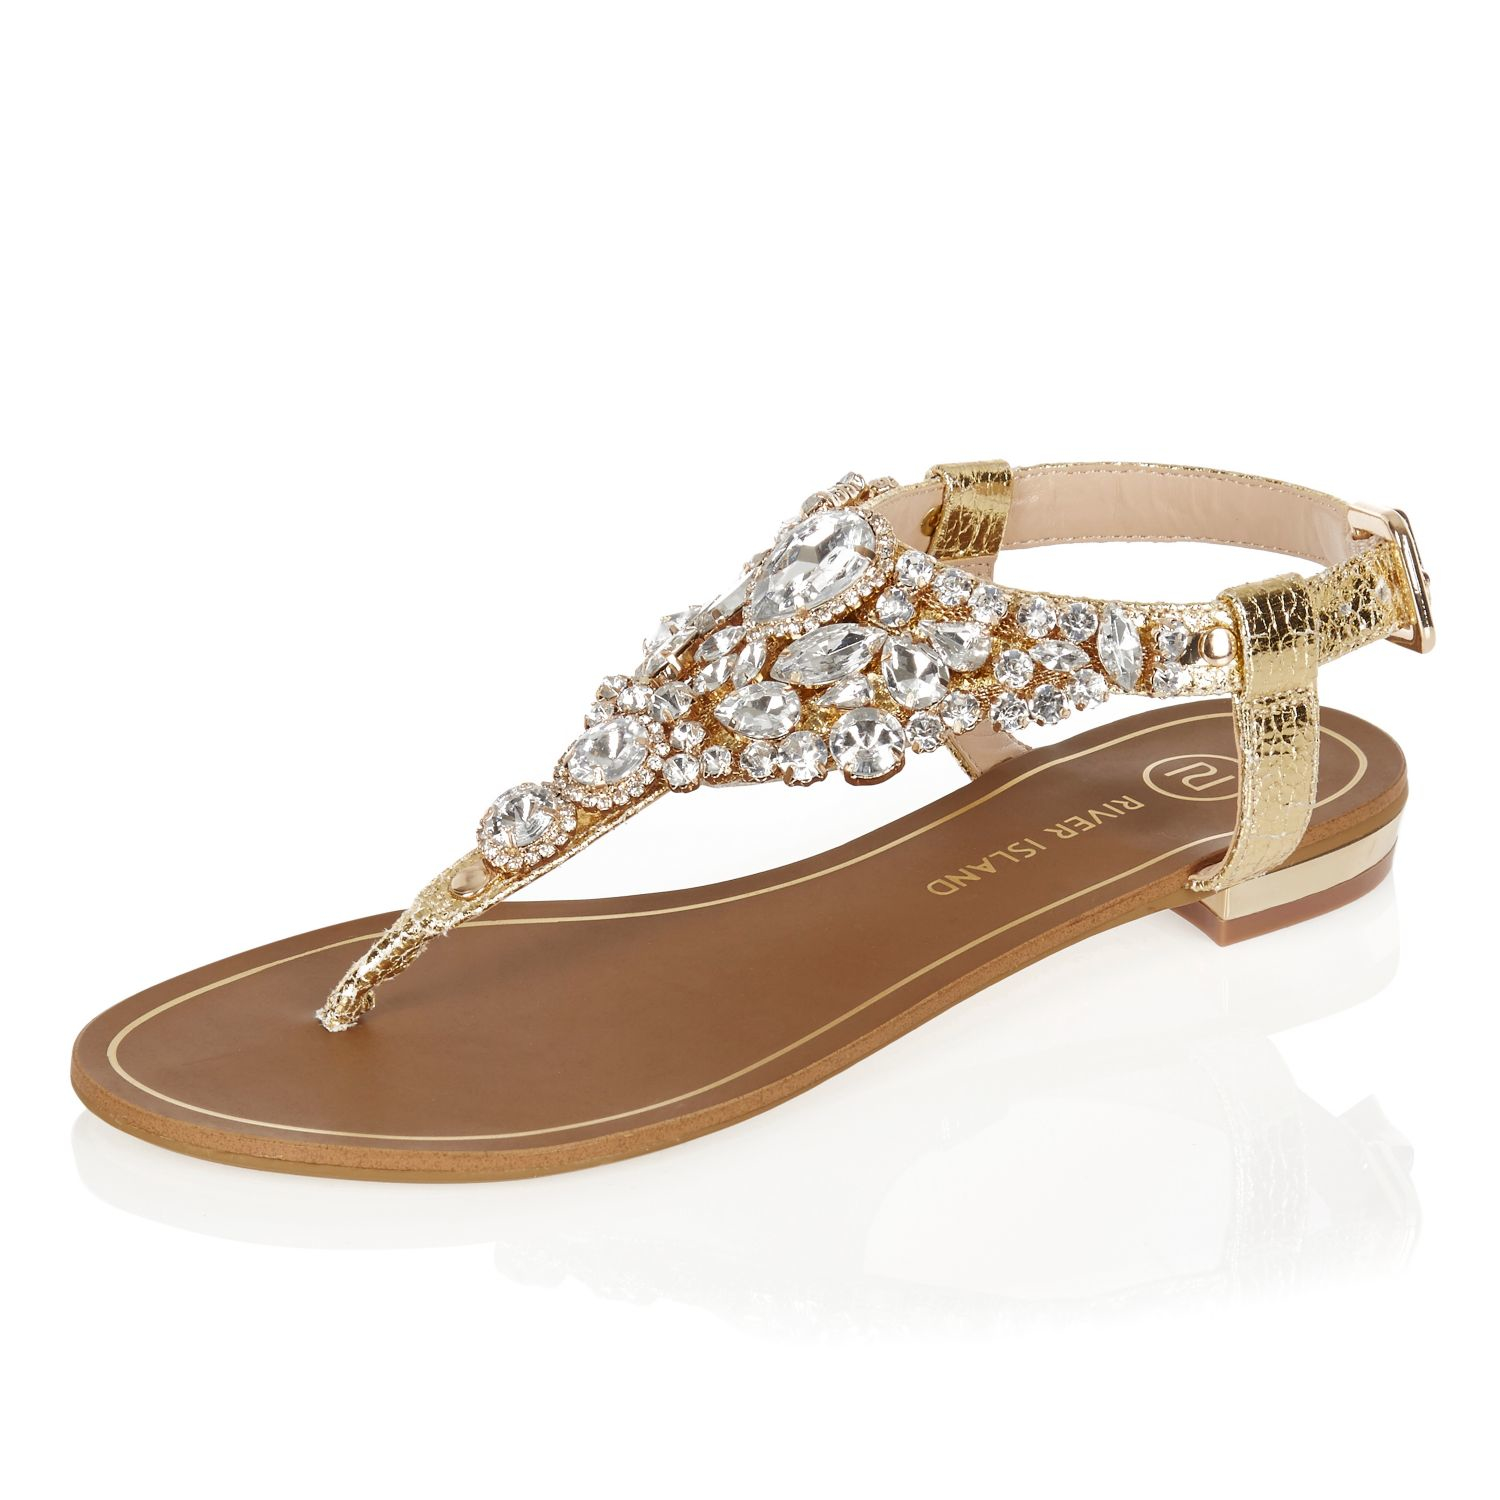 Black jelly sandals river island - Gallery Women S Gold Sandals